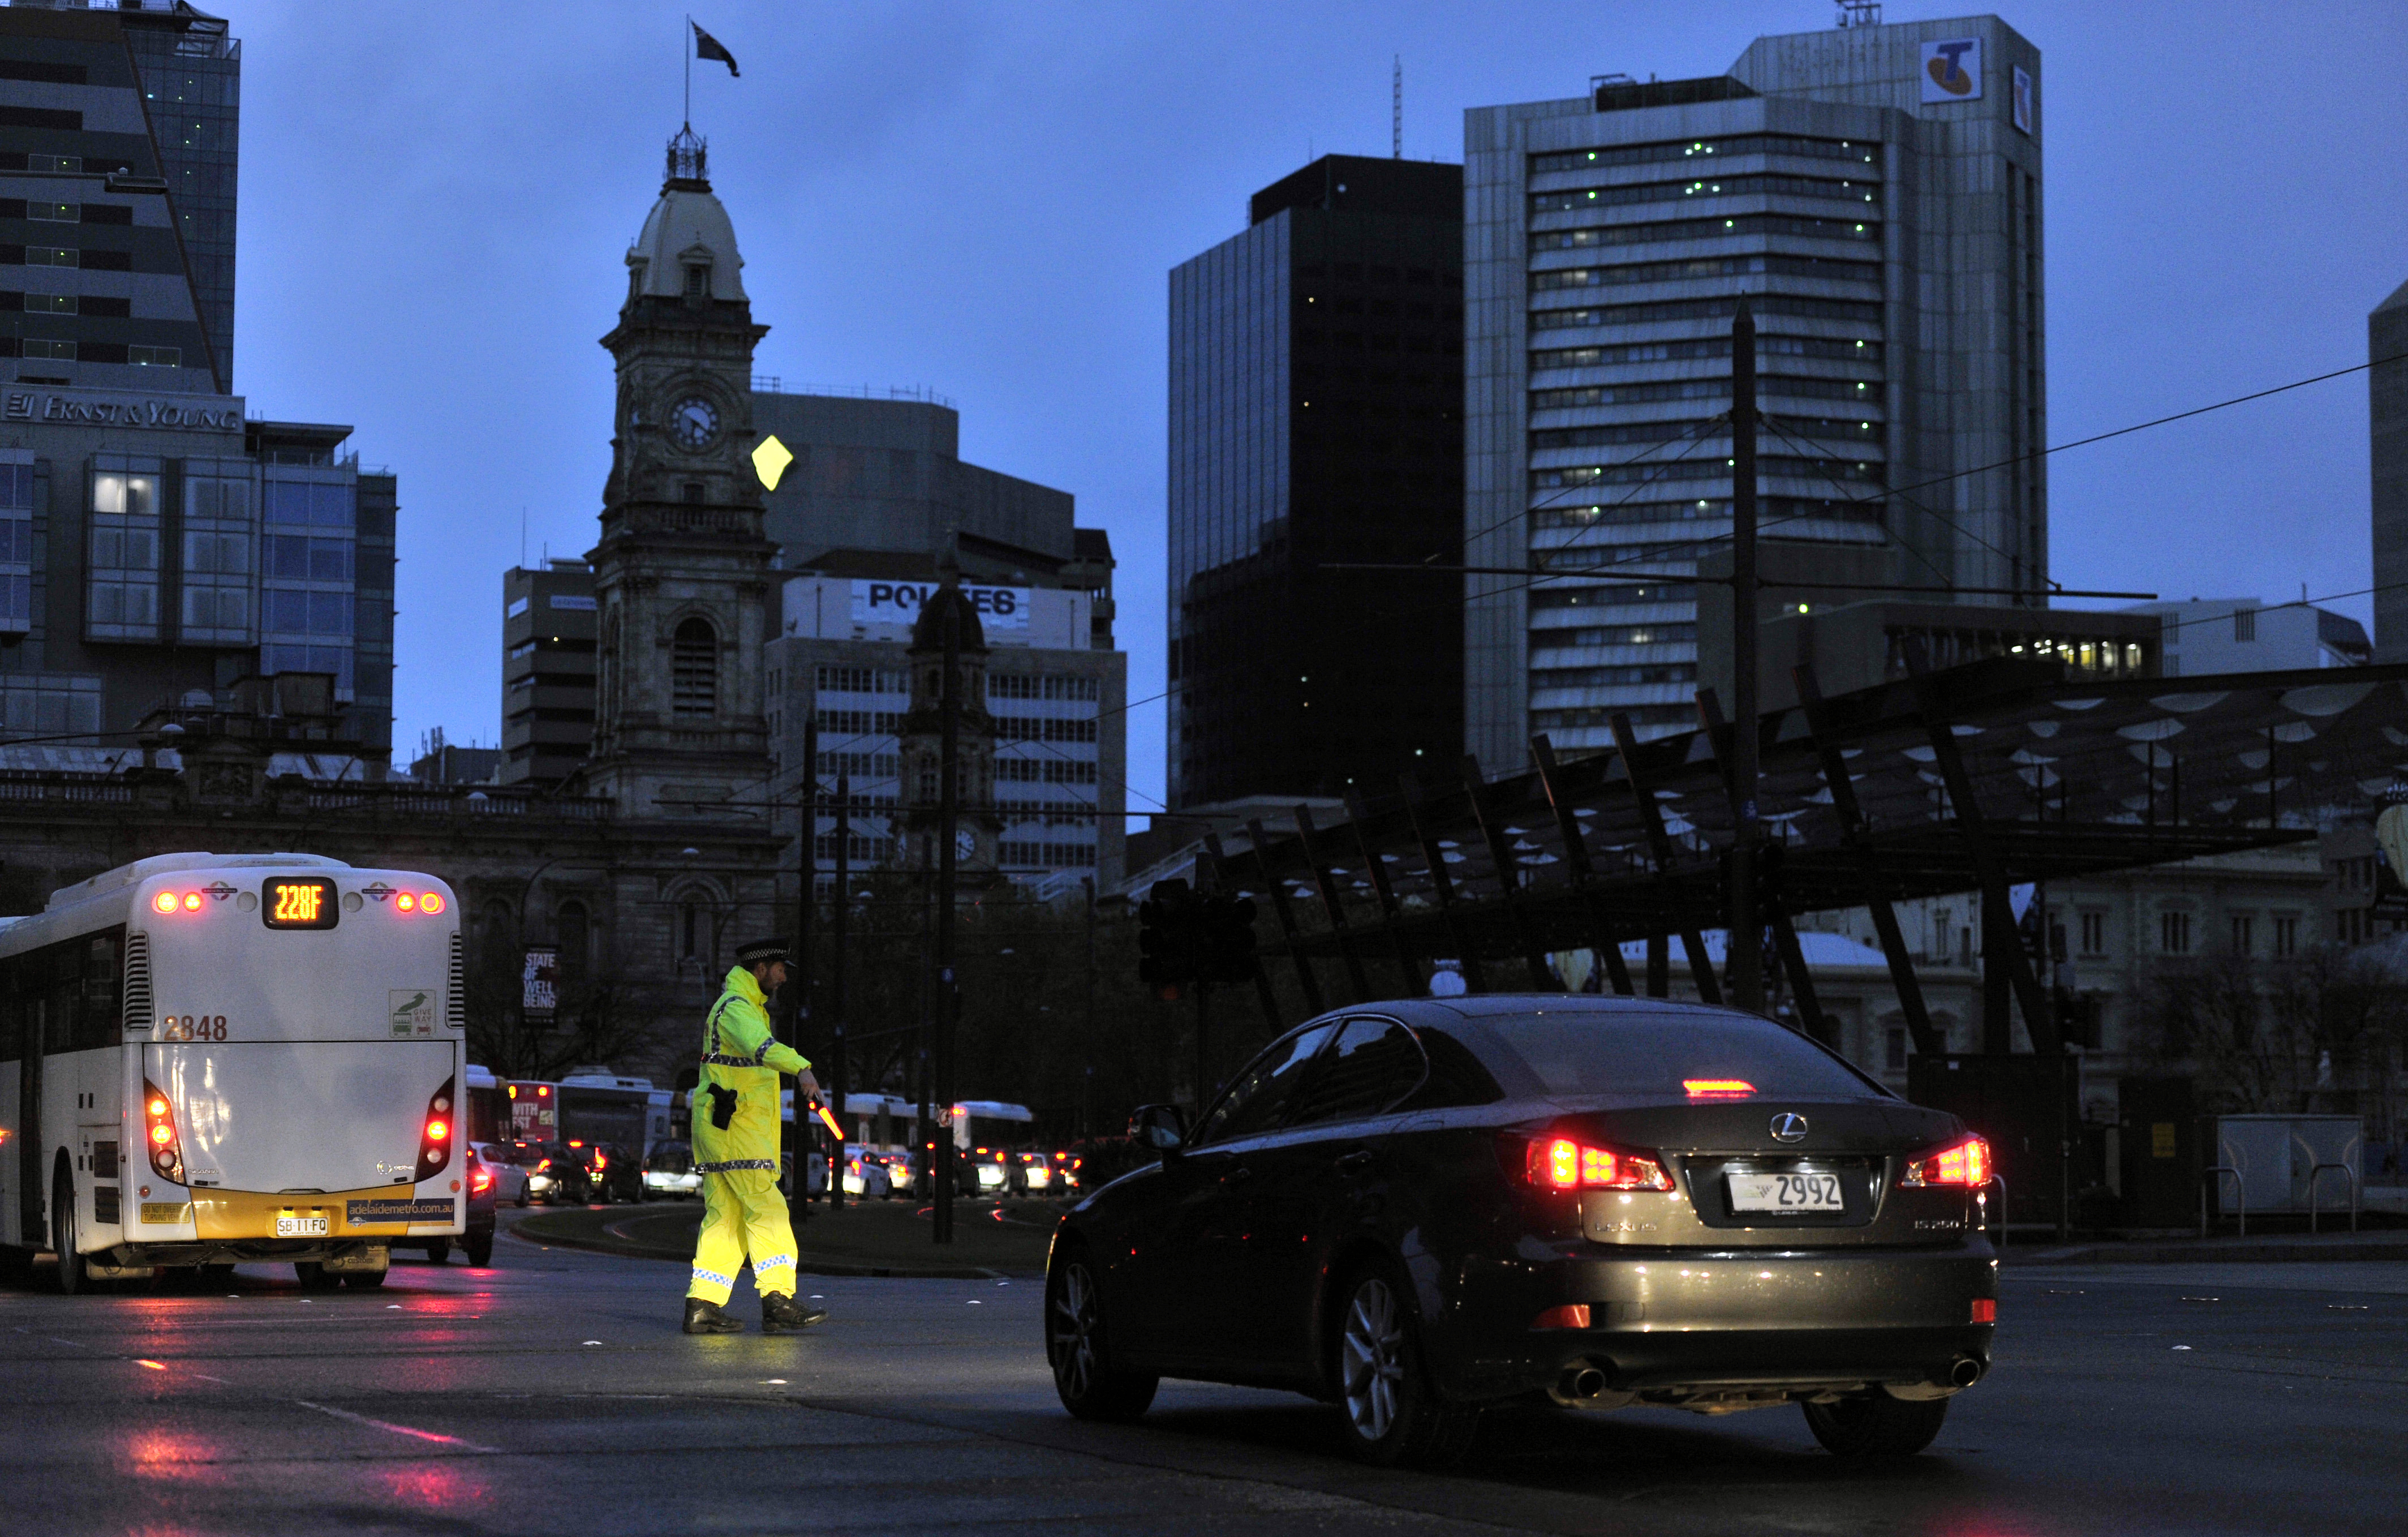 Police direct traffic in Adelaide on Sept. 28, 2016, after the power network stopped working, creating a broad blackout in South Australia